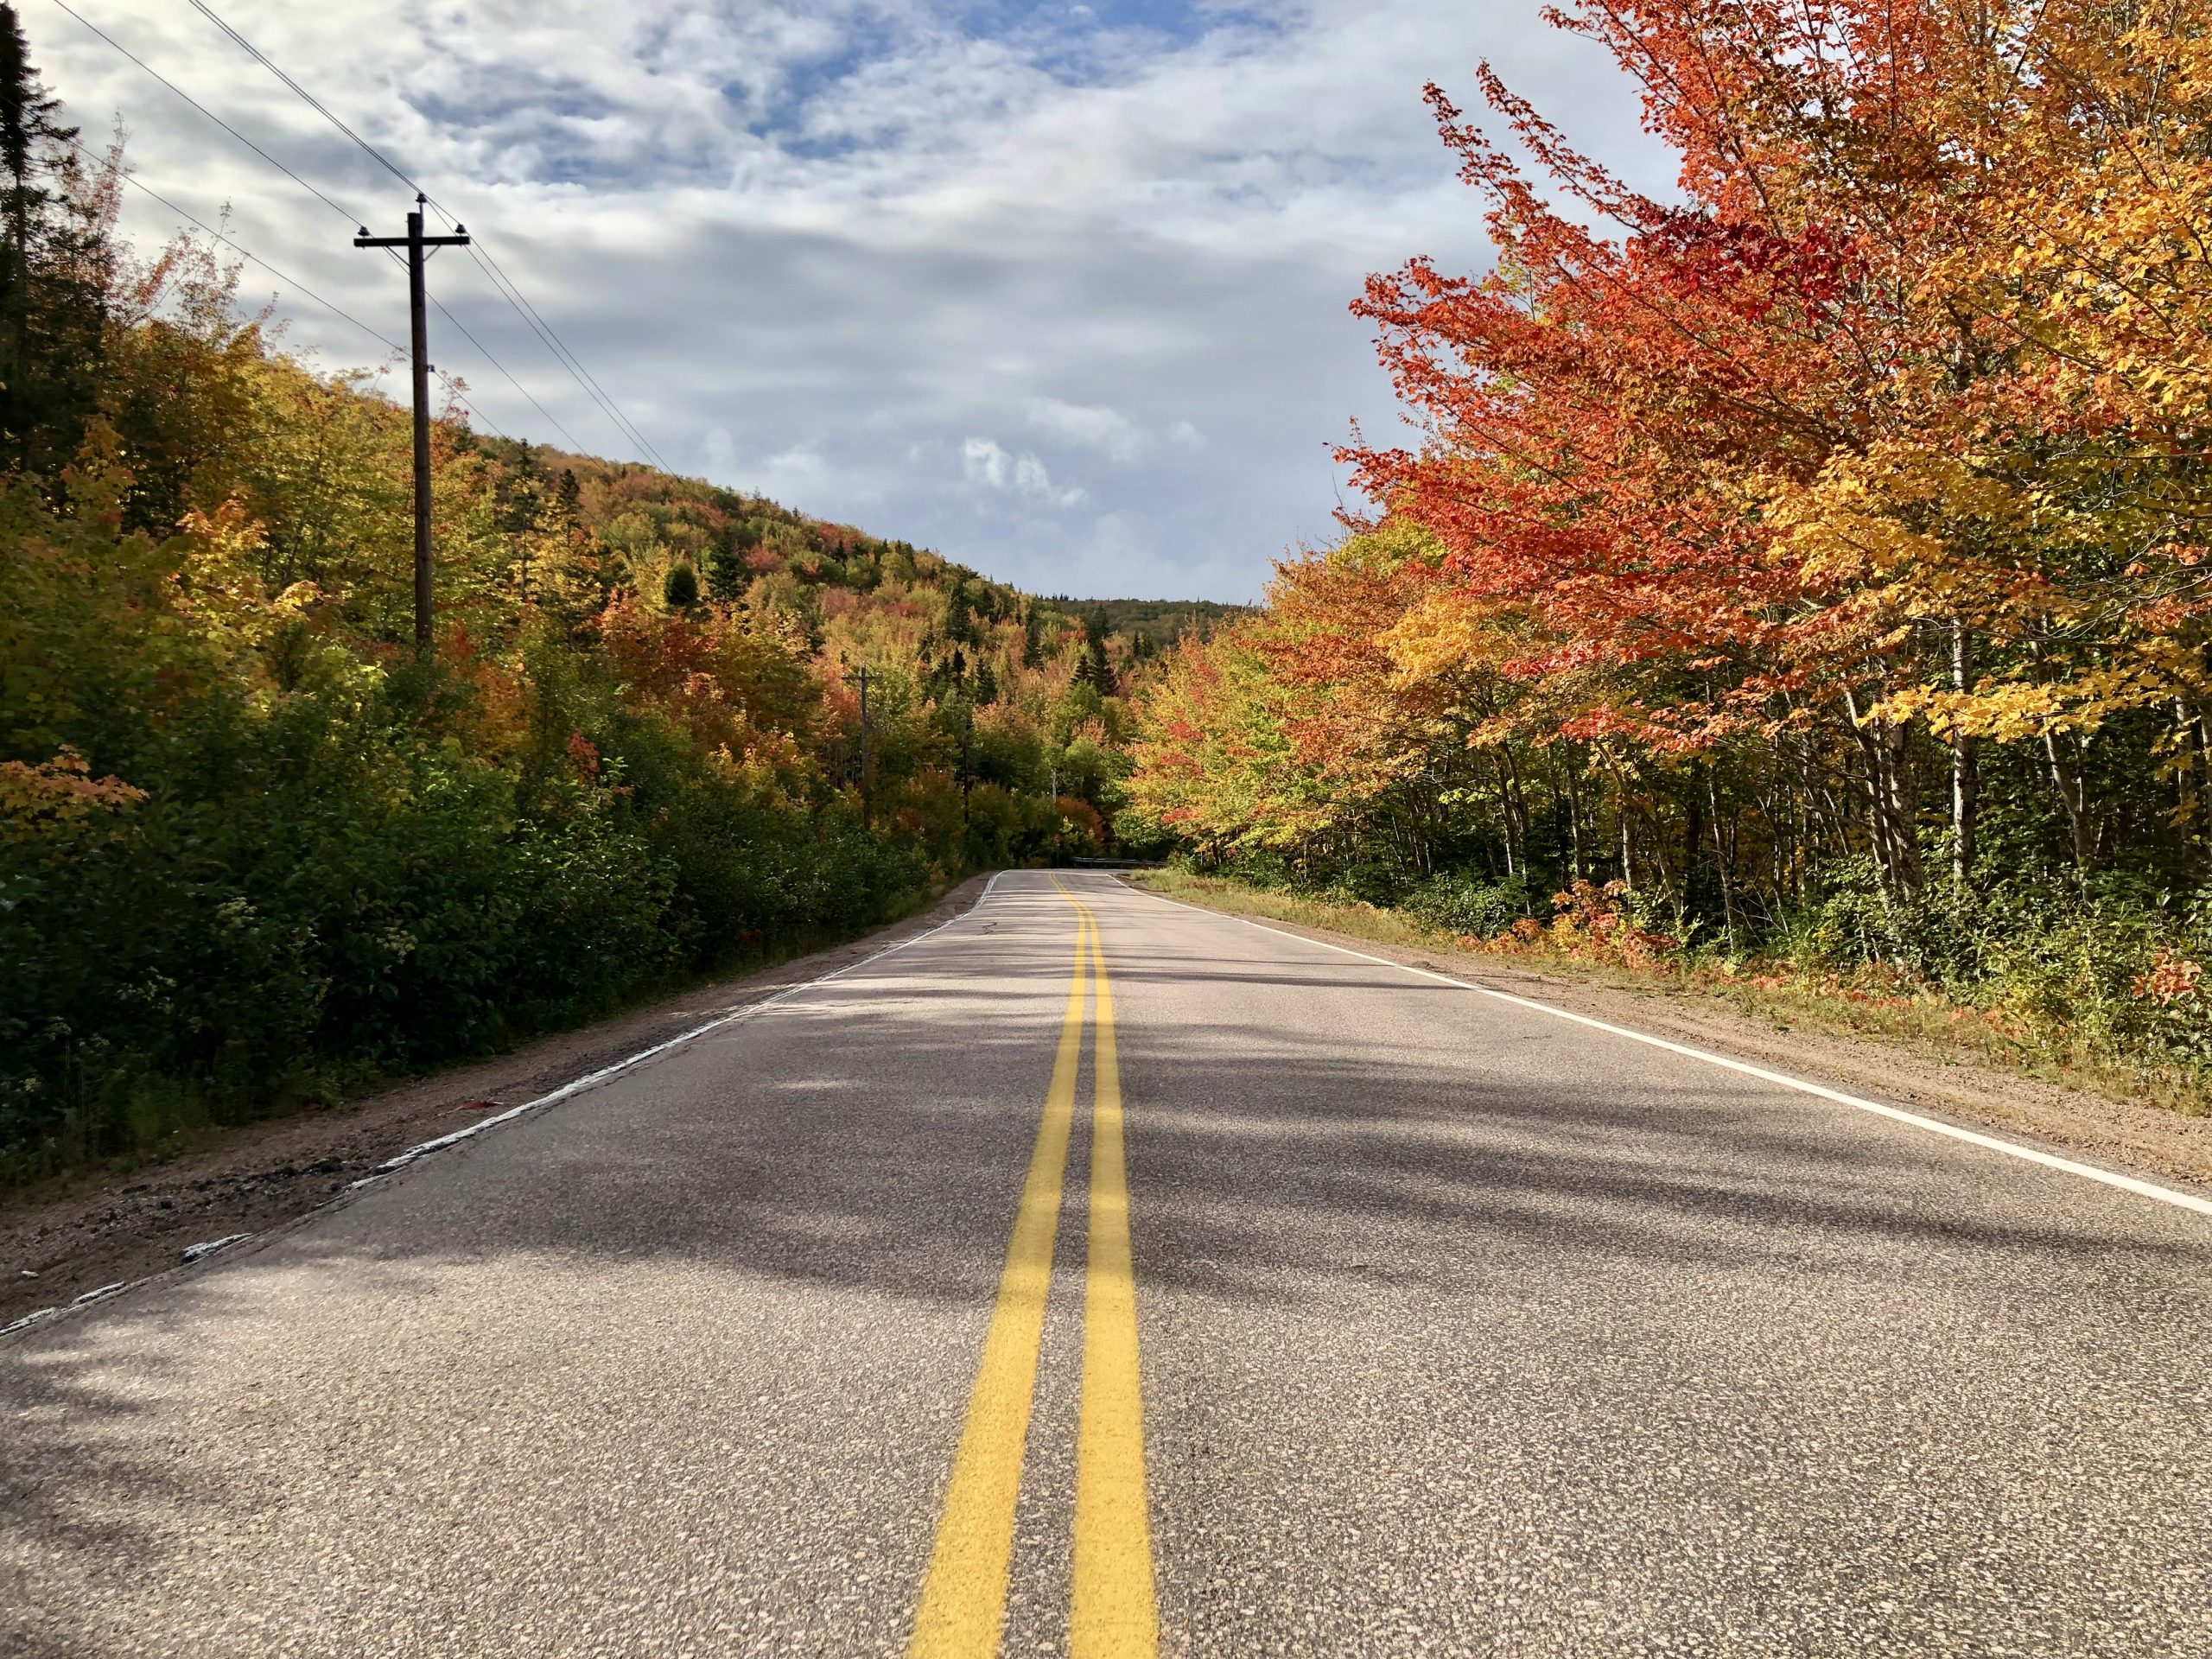 Canada's Most Scenic Drives: The Eye-Catching Cabot Trail on Cape Breton Island via @outandacross